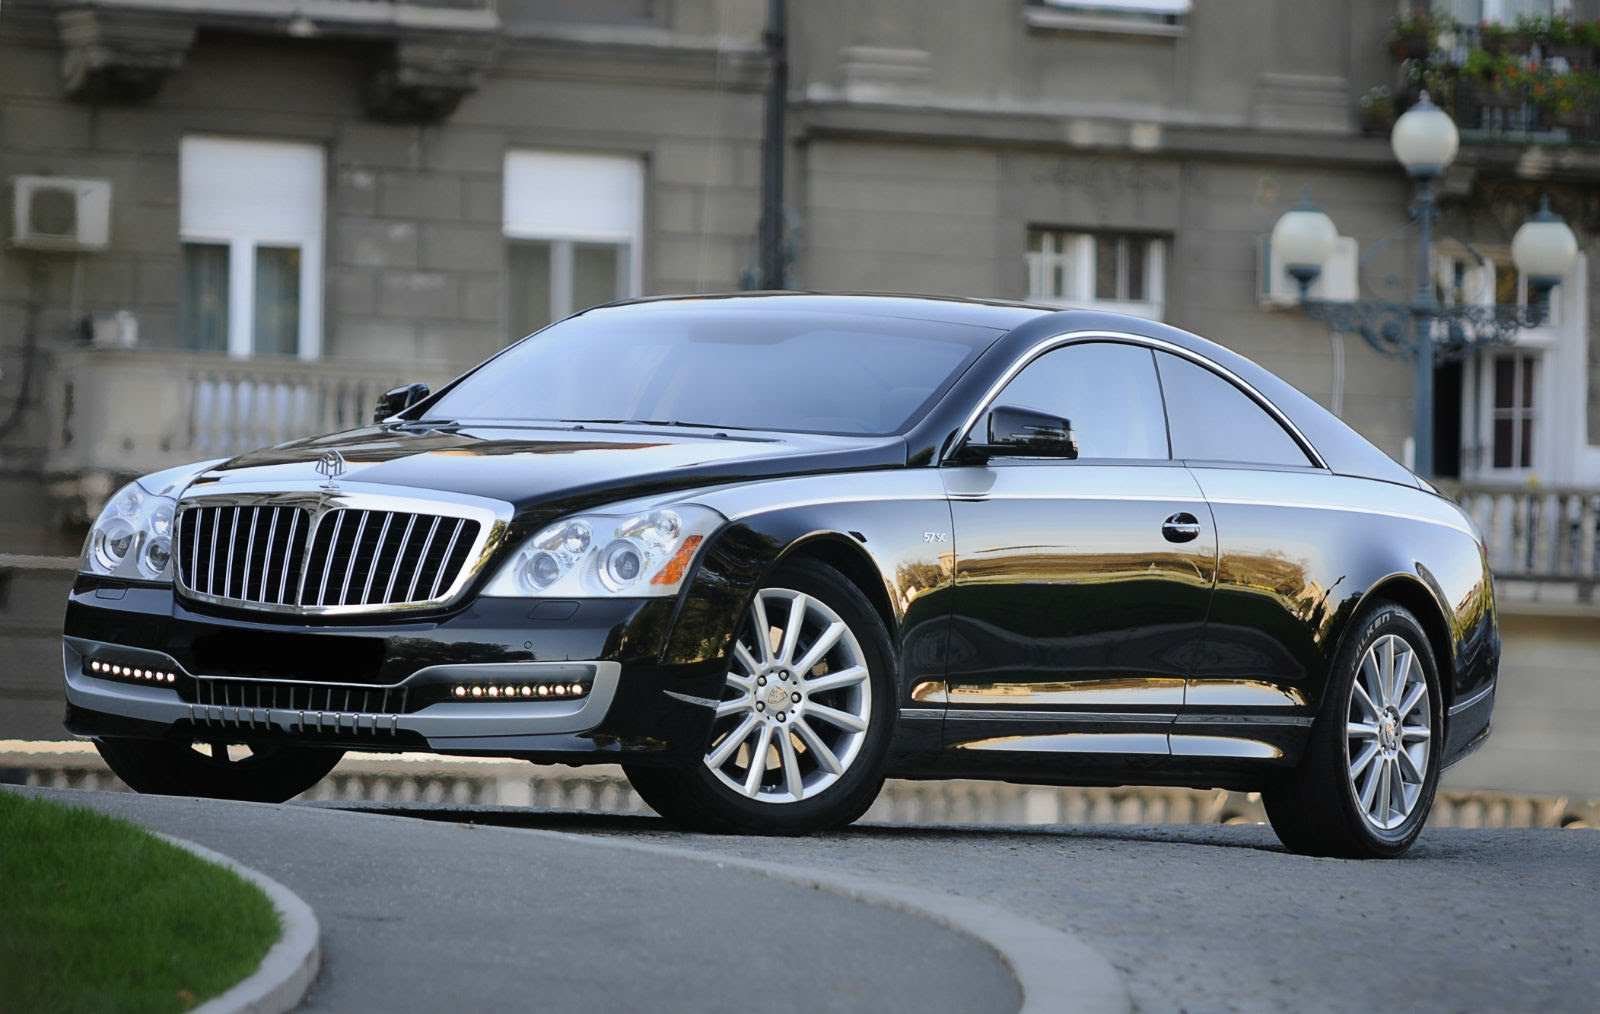 Жена министра заказала Maybach Coupe почти за 3 млн евро?